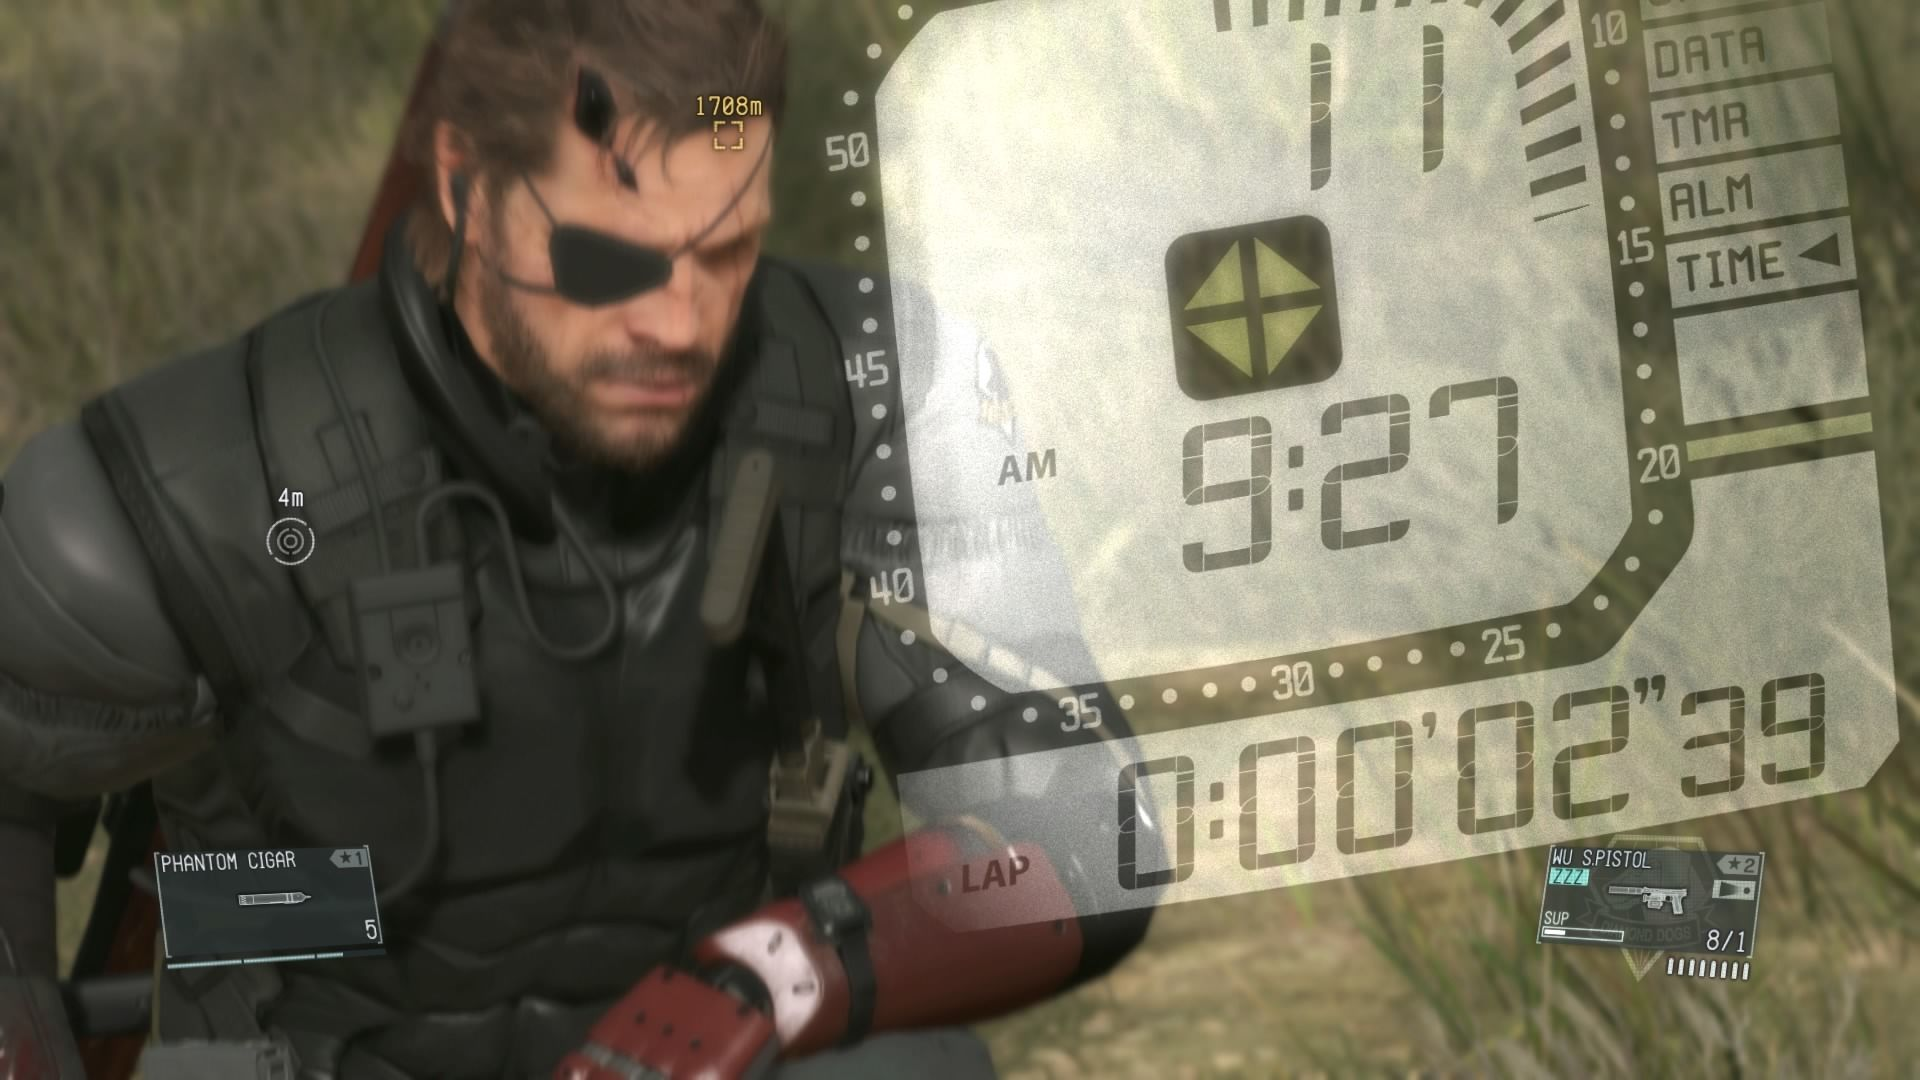 a8f560b210a Screenshot 27 of 50. Metal Gear Solid V  The Phantom Pain PlayStation 4  Phantom cigar lets you fast forward